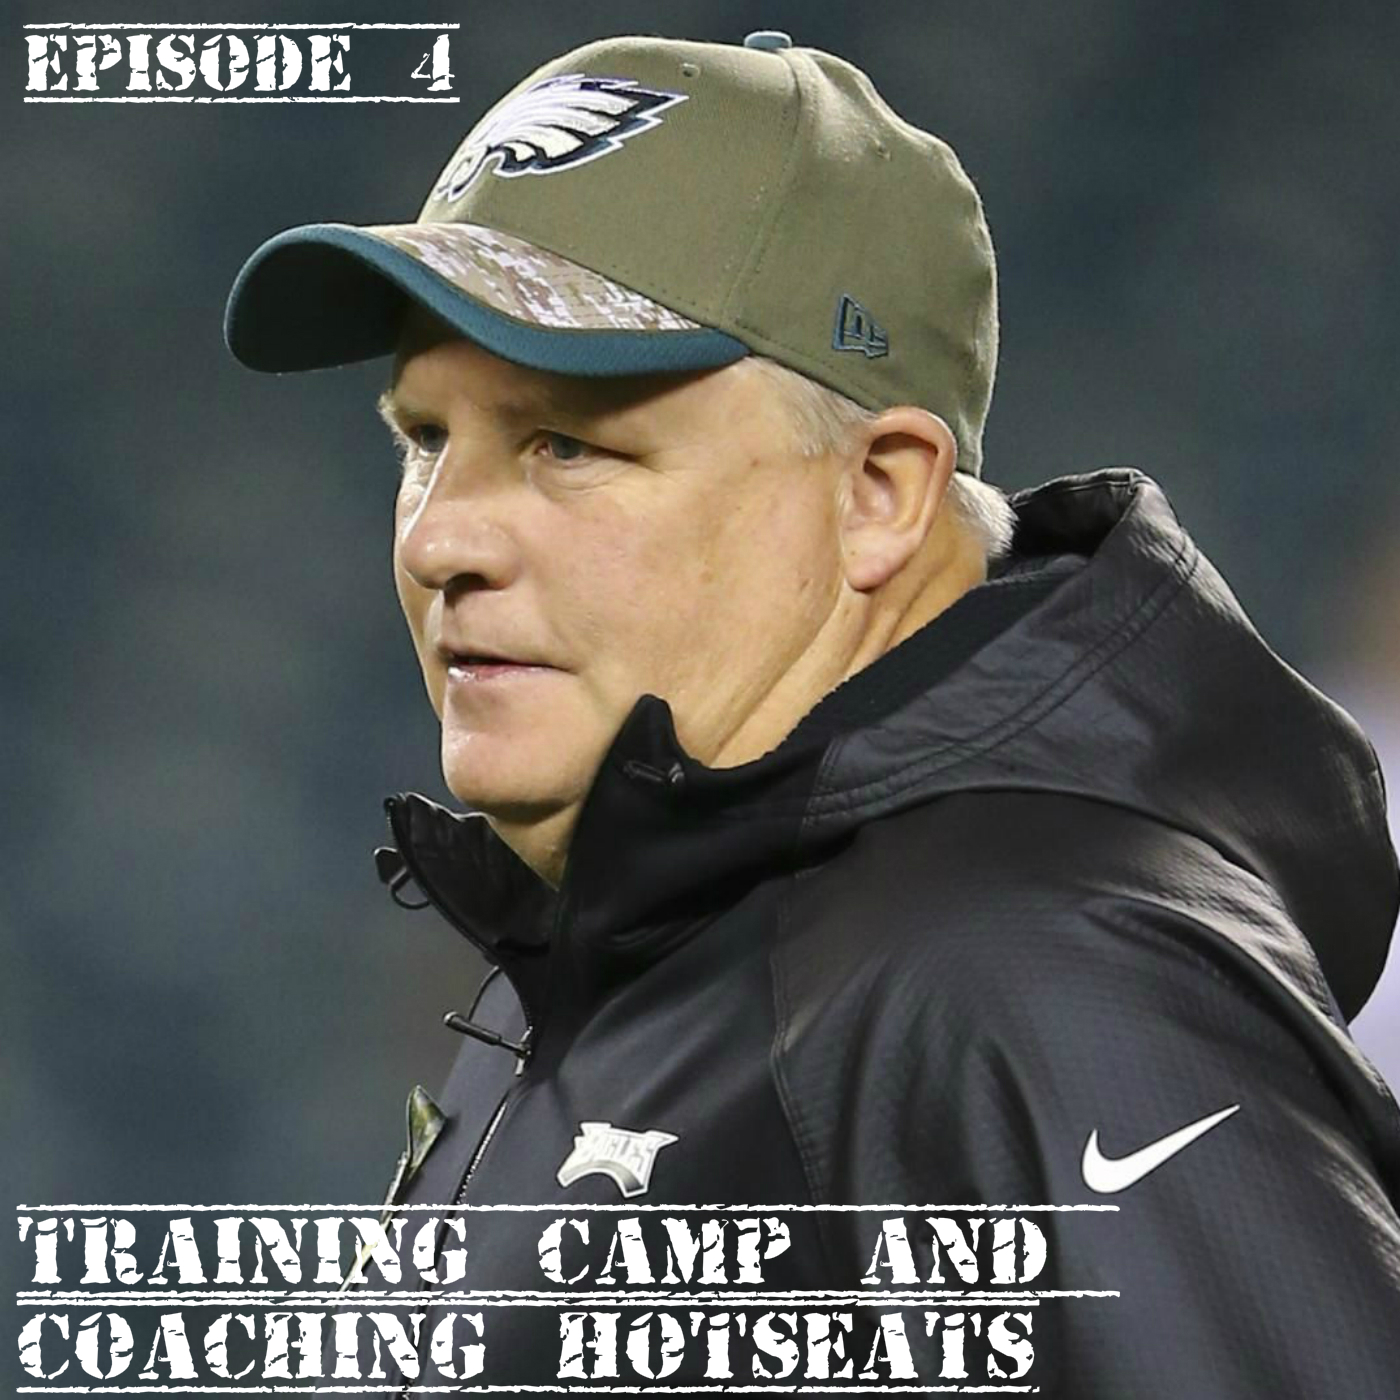 EP4 Training Camp and the Coaching Hotseat SQ.jpg